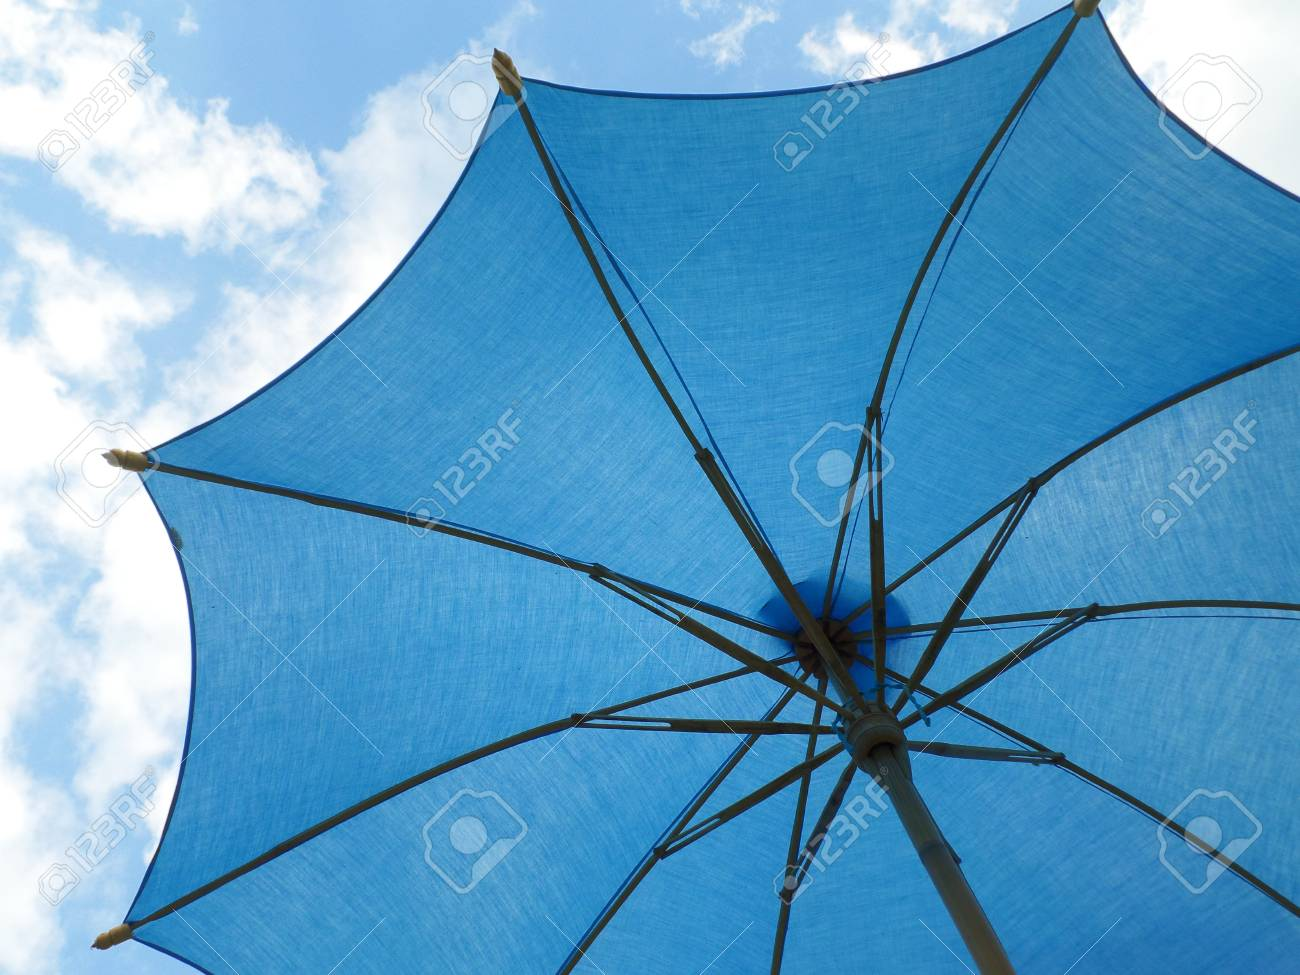 75083f6d4 One vibrant blue colored sunshade against bright blue sky and white cloud  Stock Photo - 70009397